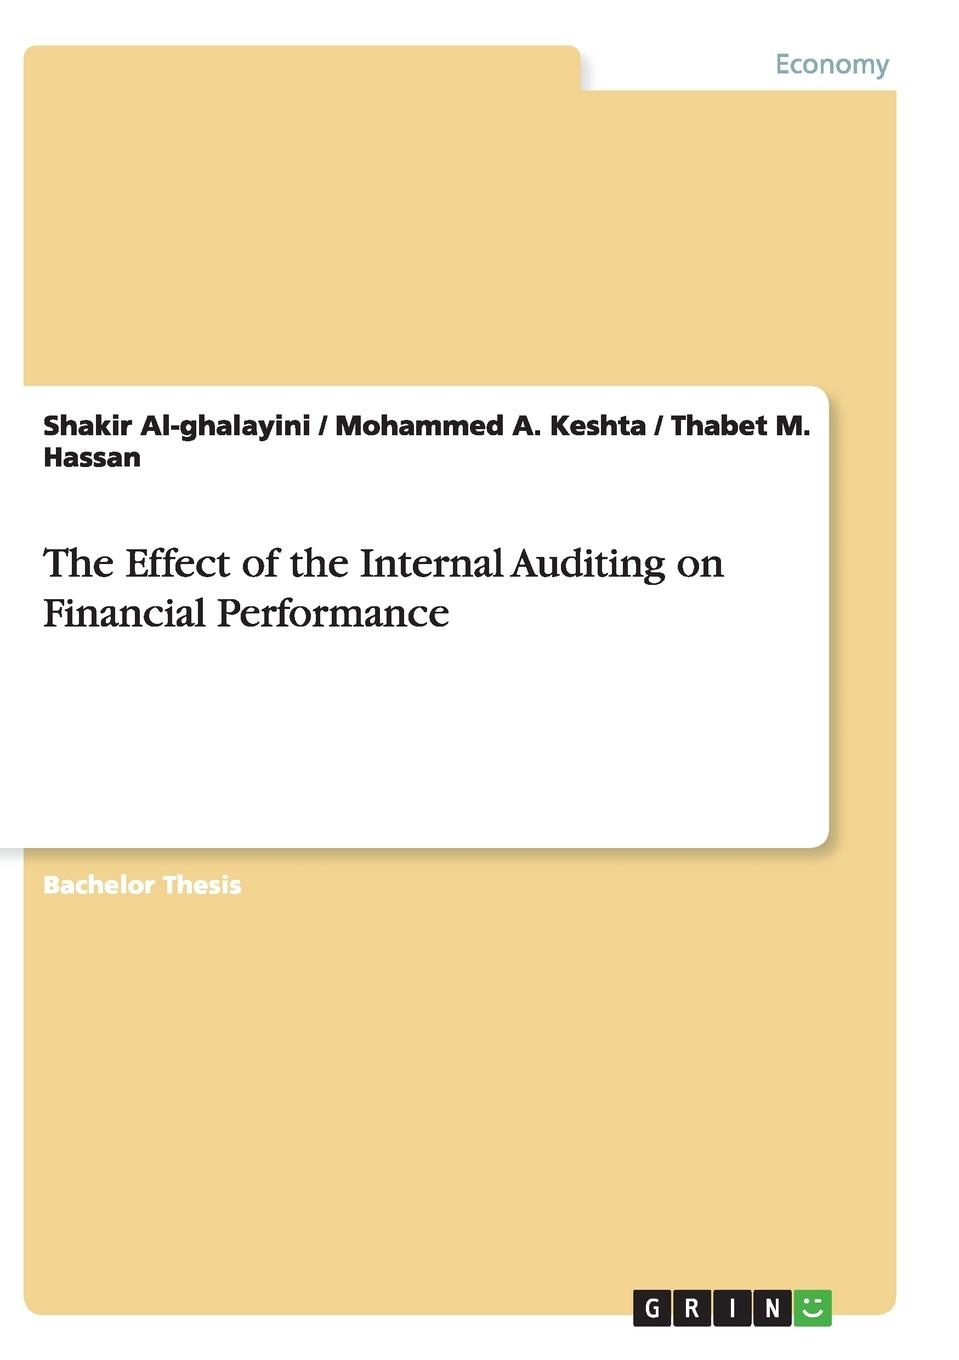 Shakir Al-ghalayini, Mohammed A. Keshta, Thabet M. Hassan The Effect of the Internal Auditing on Financial Performance internal control of fixed assets acontroller and auditor s guide